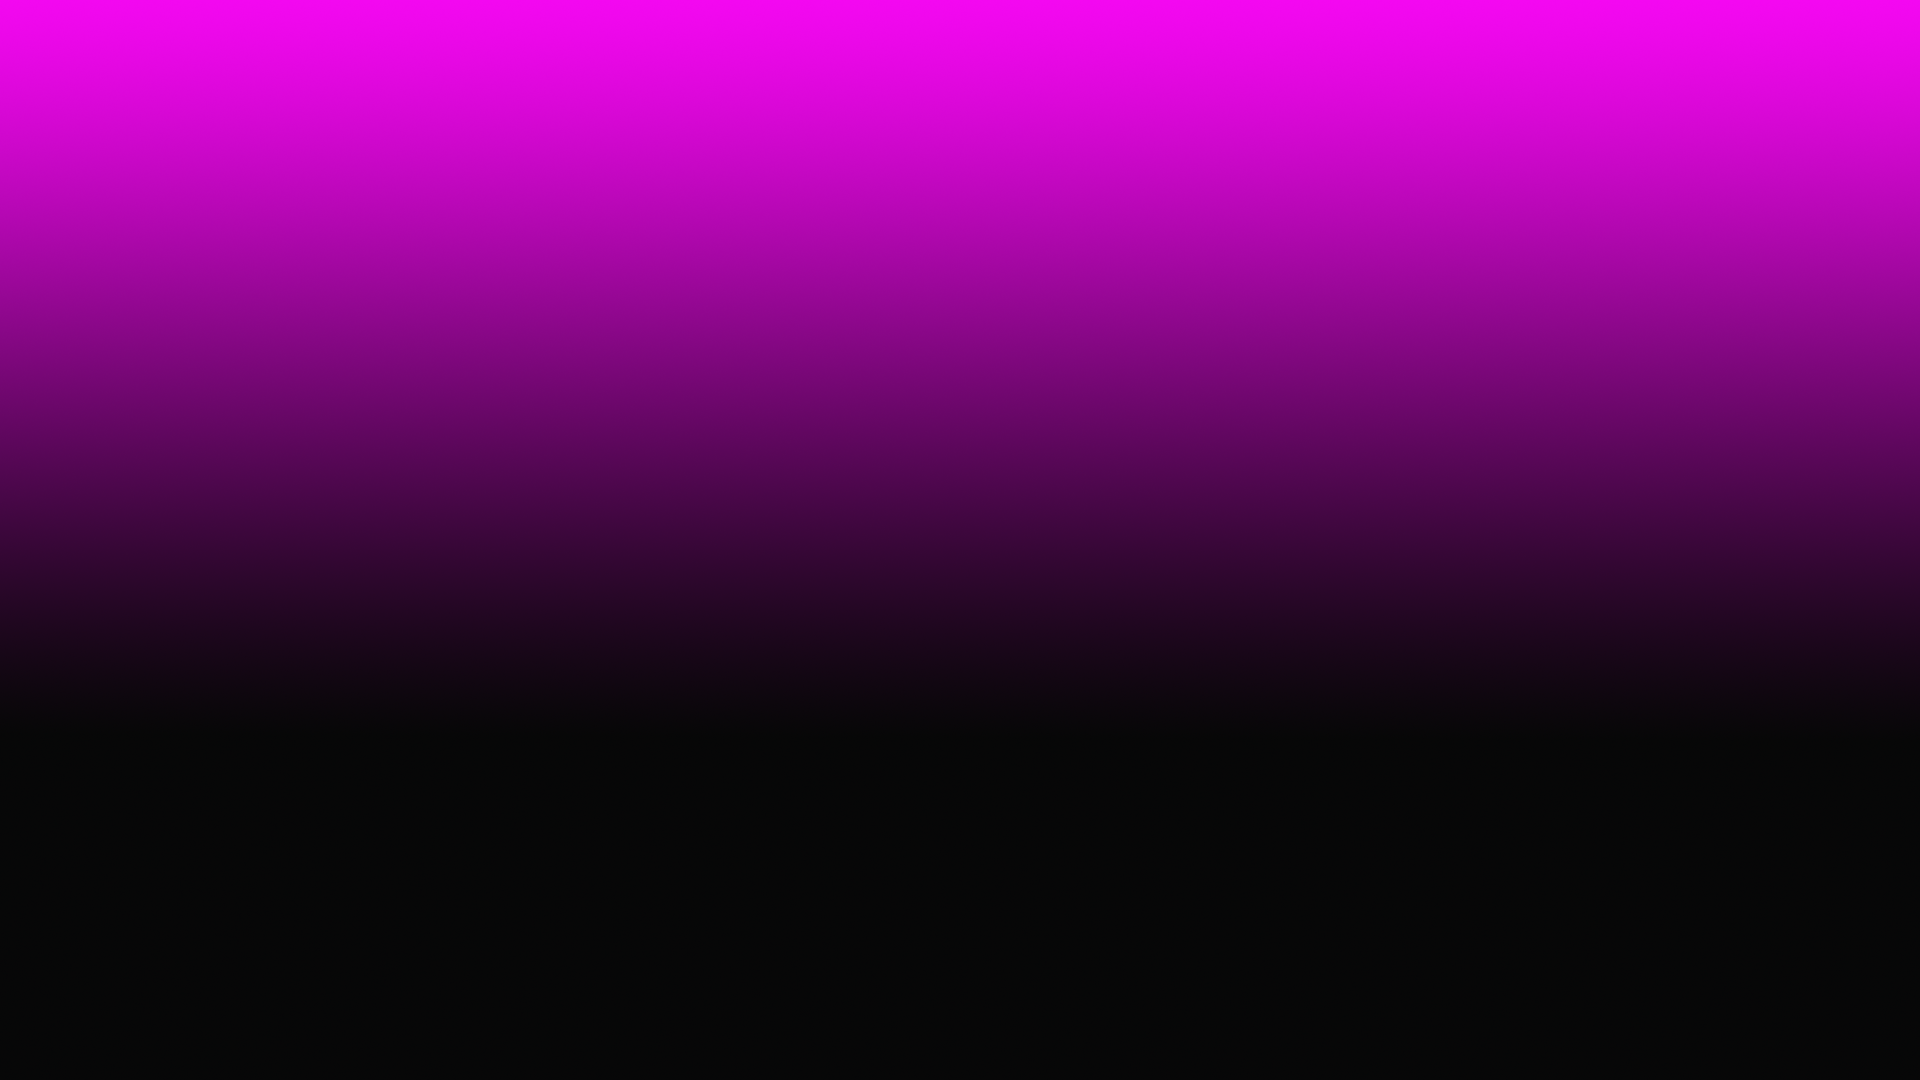 Nothing found for Pink black gradient desktop wallpaper 2 1920x1080